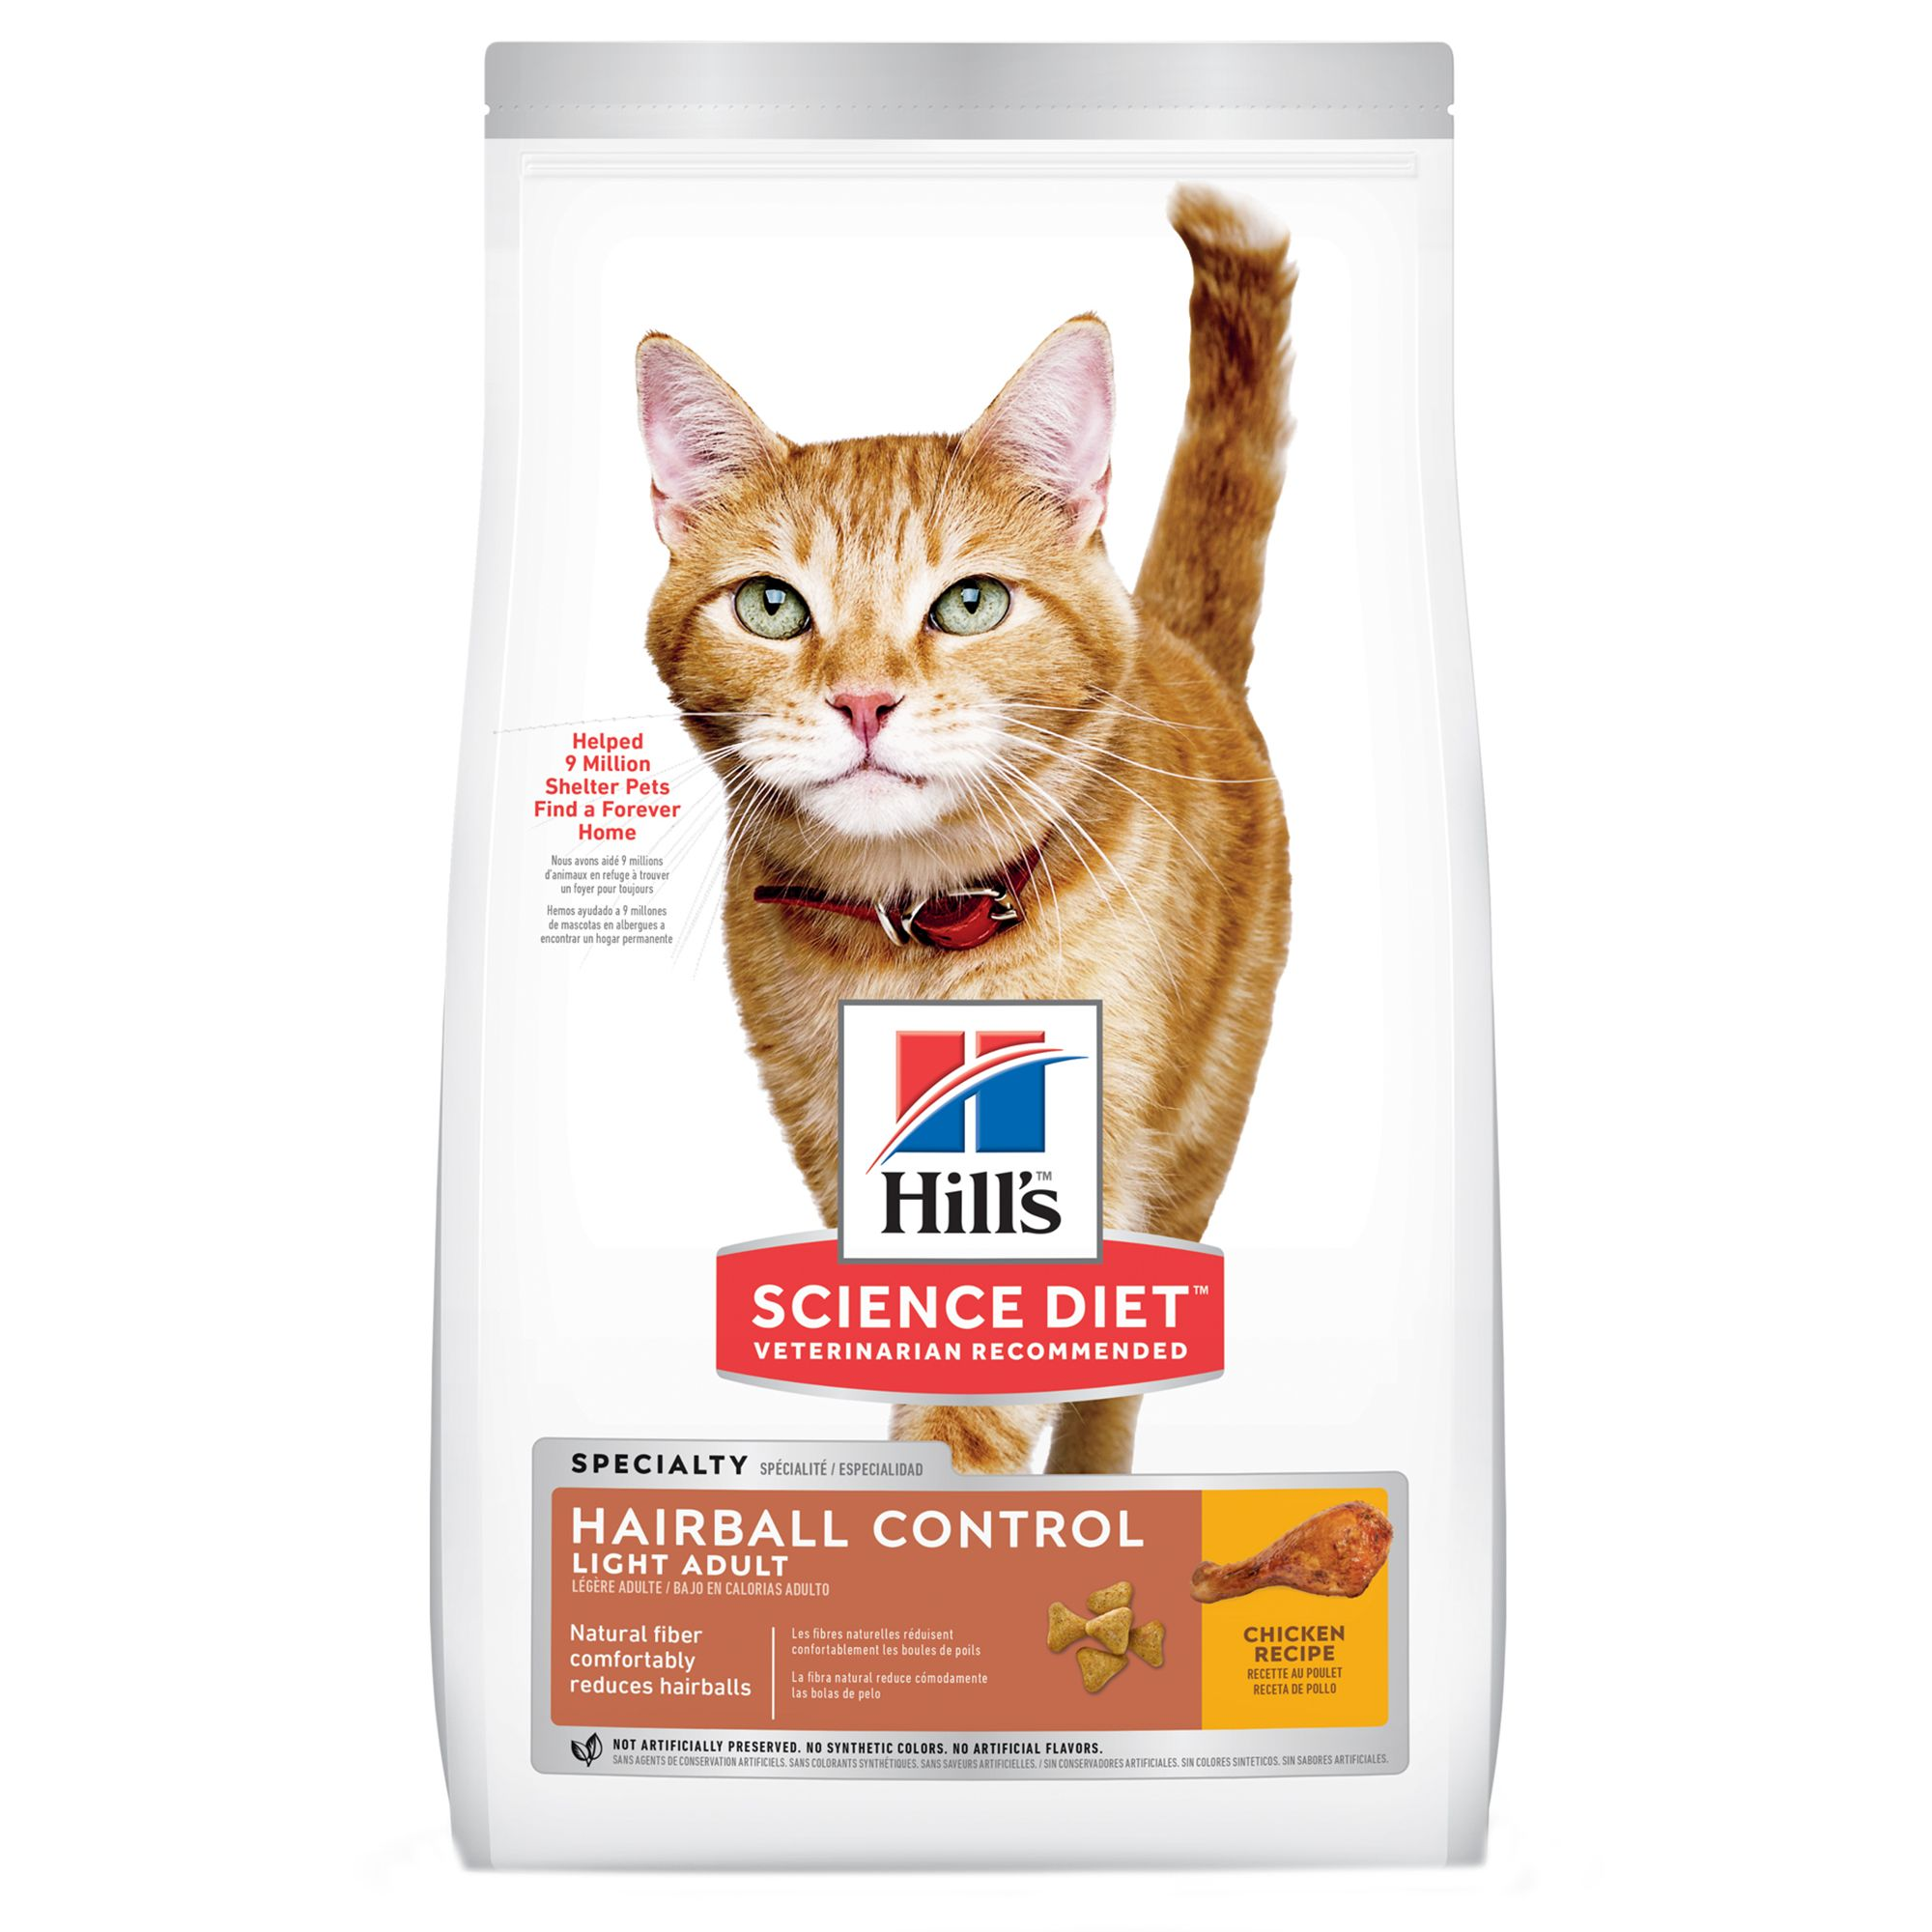 Hill's Science Diet Hairball Control Light Adult Cat Food - Chicken size: 7 Lb, Kibble 5154823